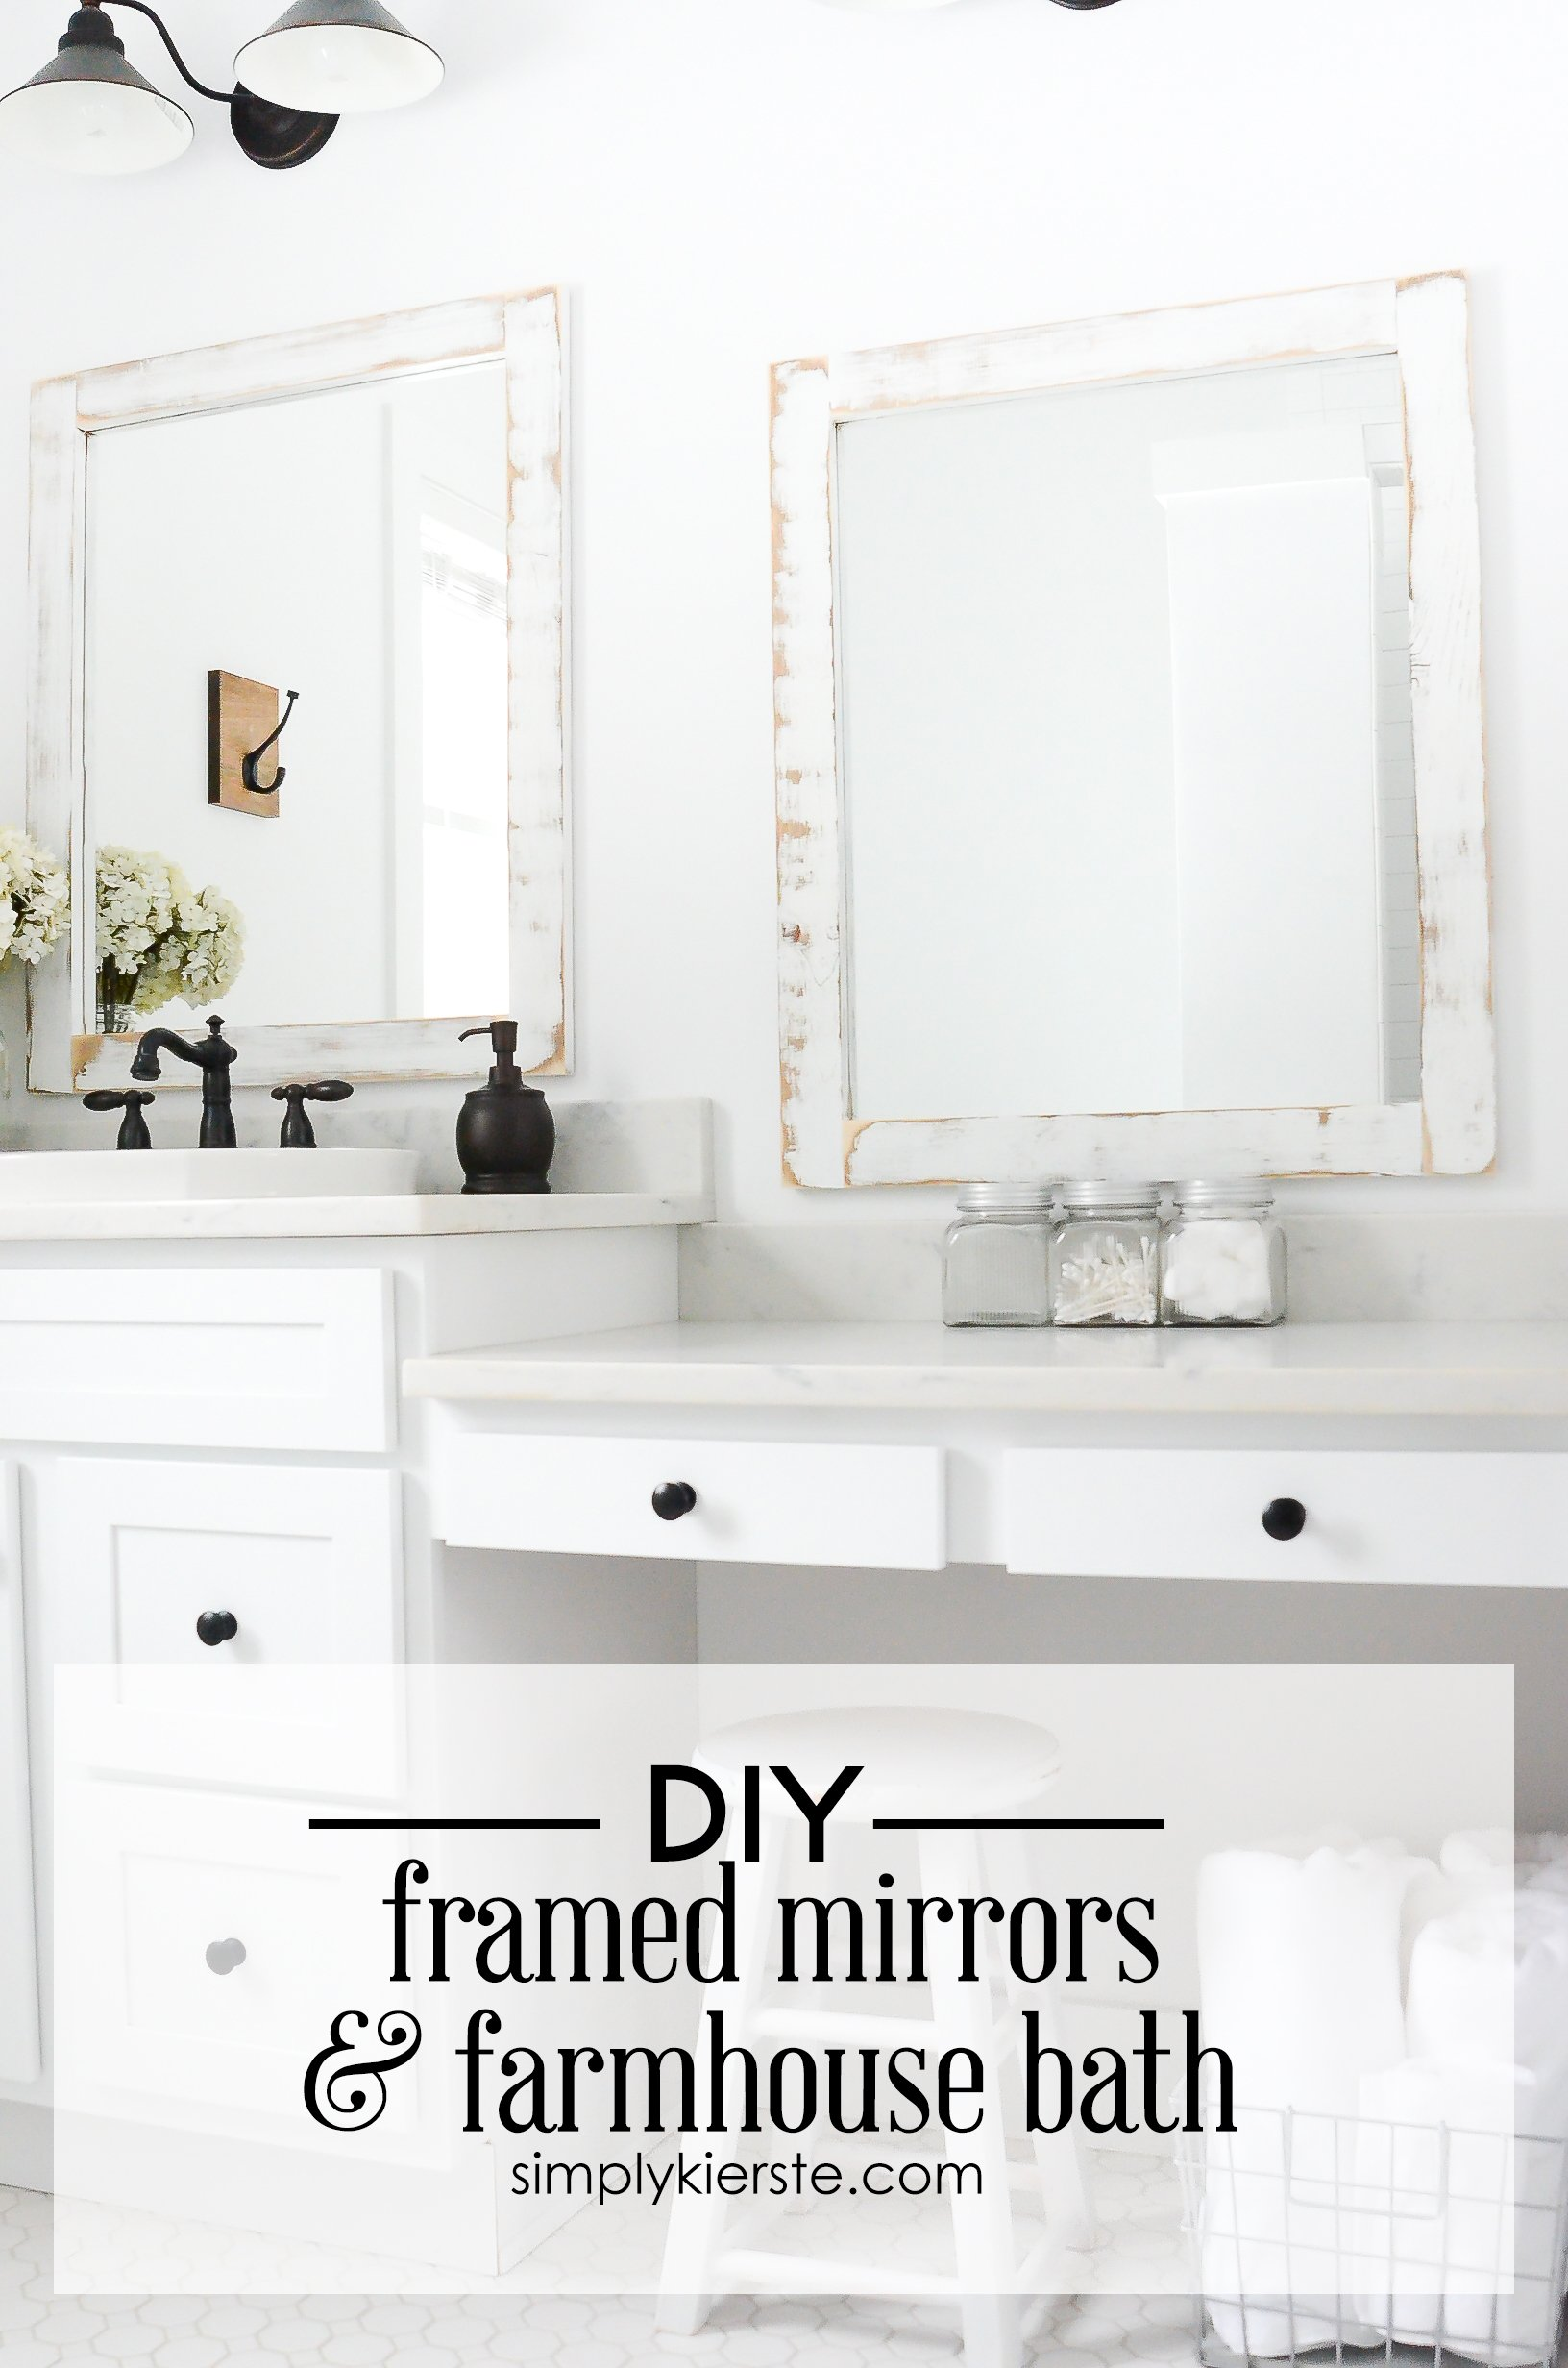 Farmhouse Bathroom + DIY Framed Mirrors